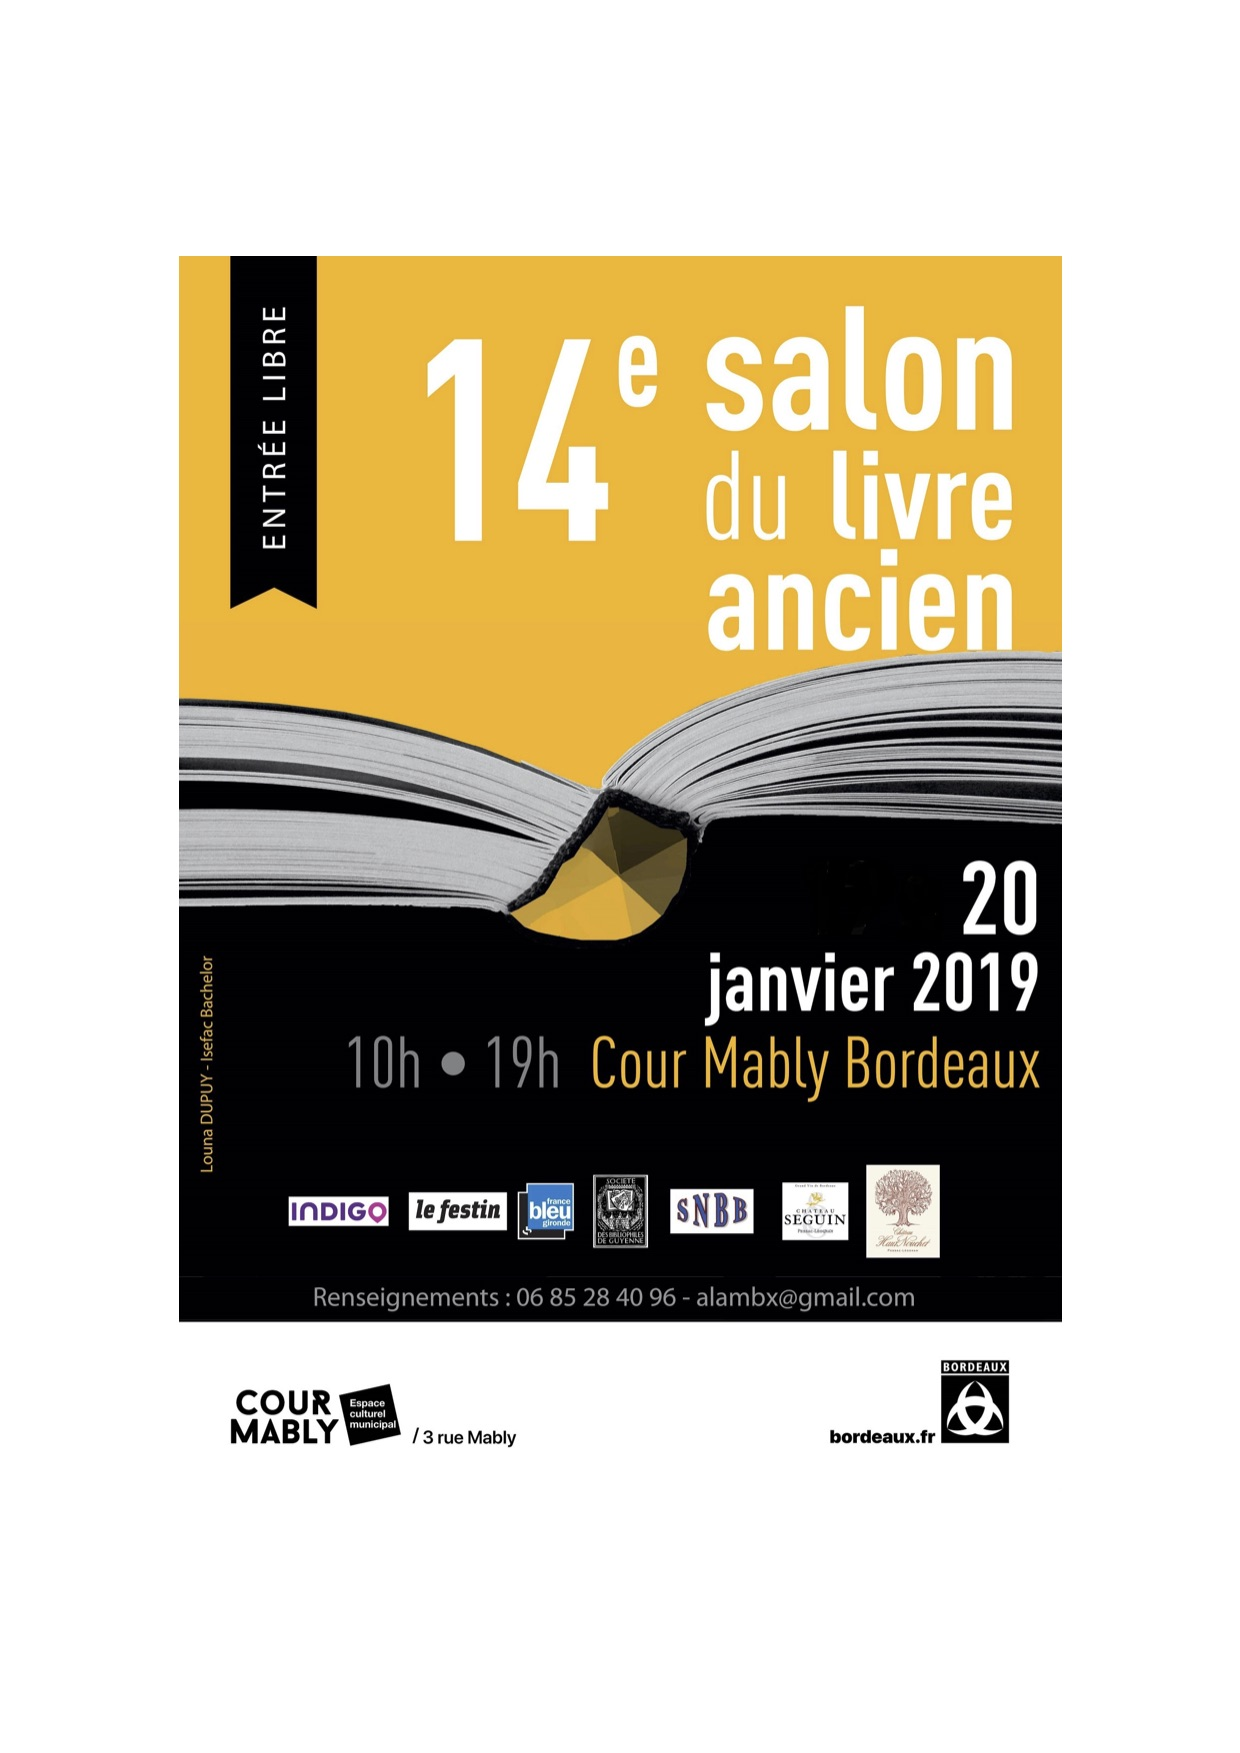 14 me salon du livre ancien 20 janvier 2019 cour mably bordeaux club presse bordeaux. Black Bedroom Furniture Sets. Home Design Ideas